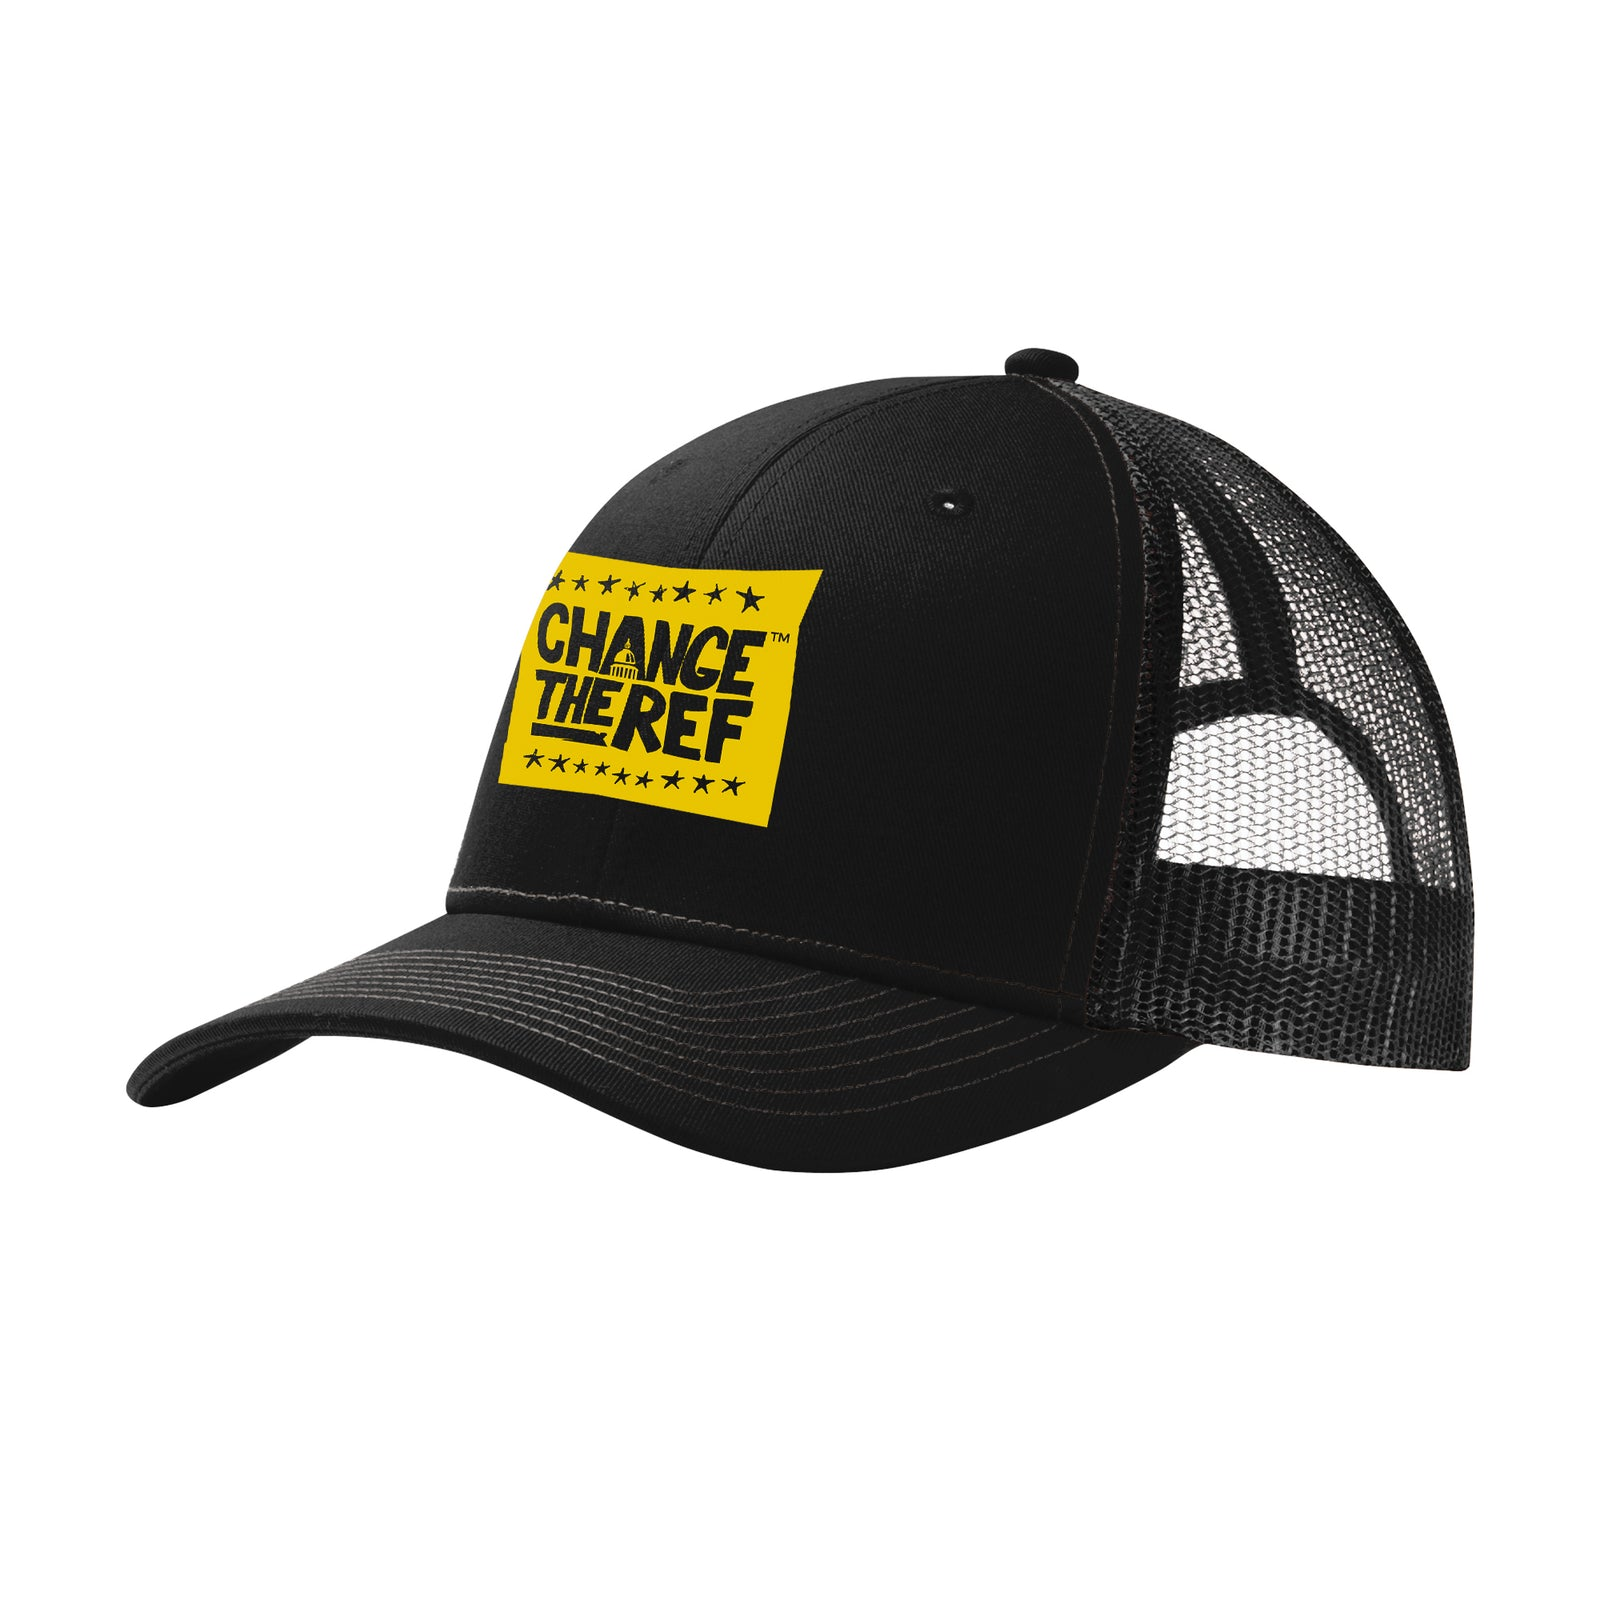 Change The Ref Hat